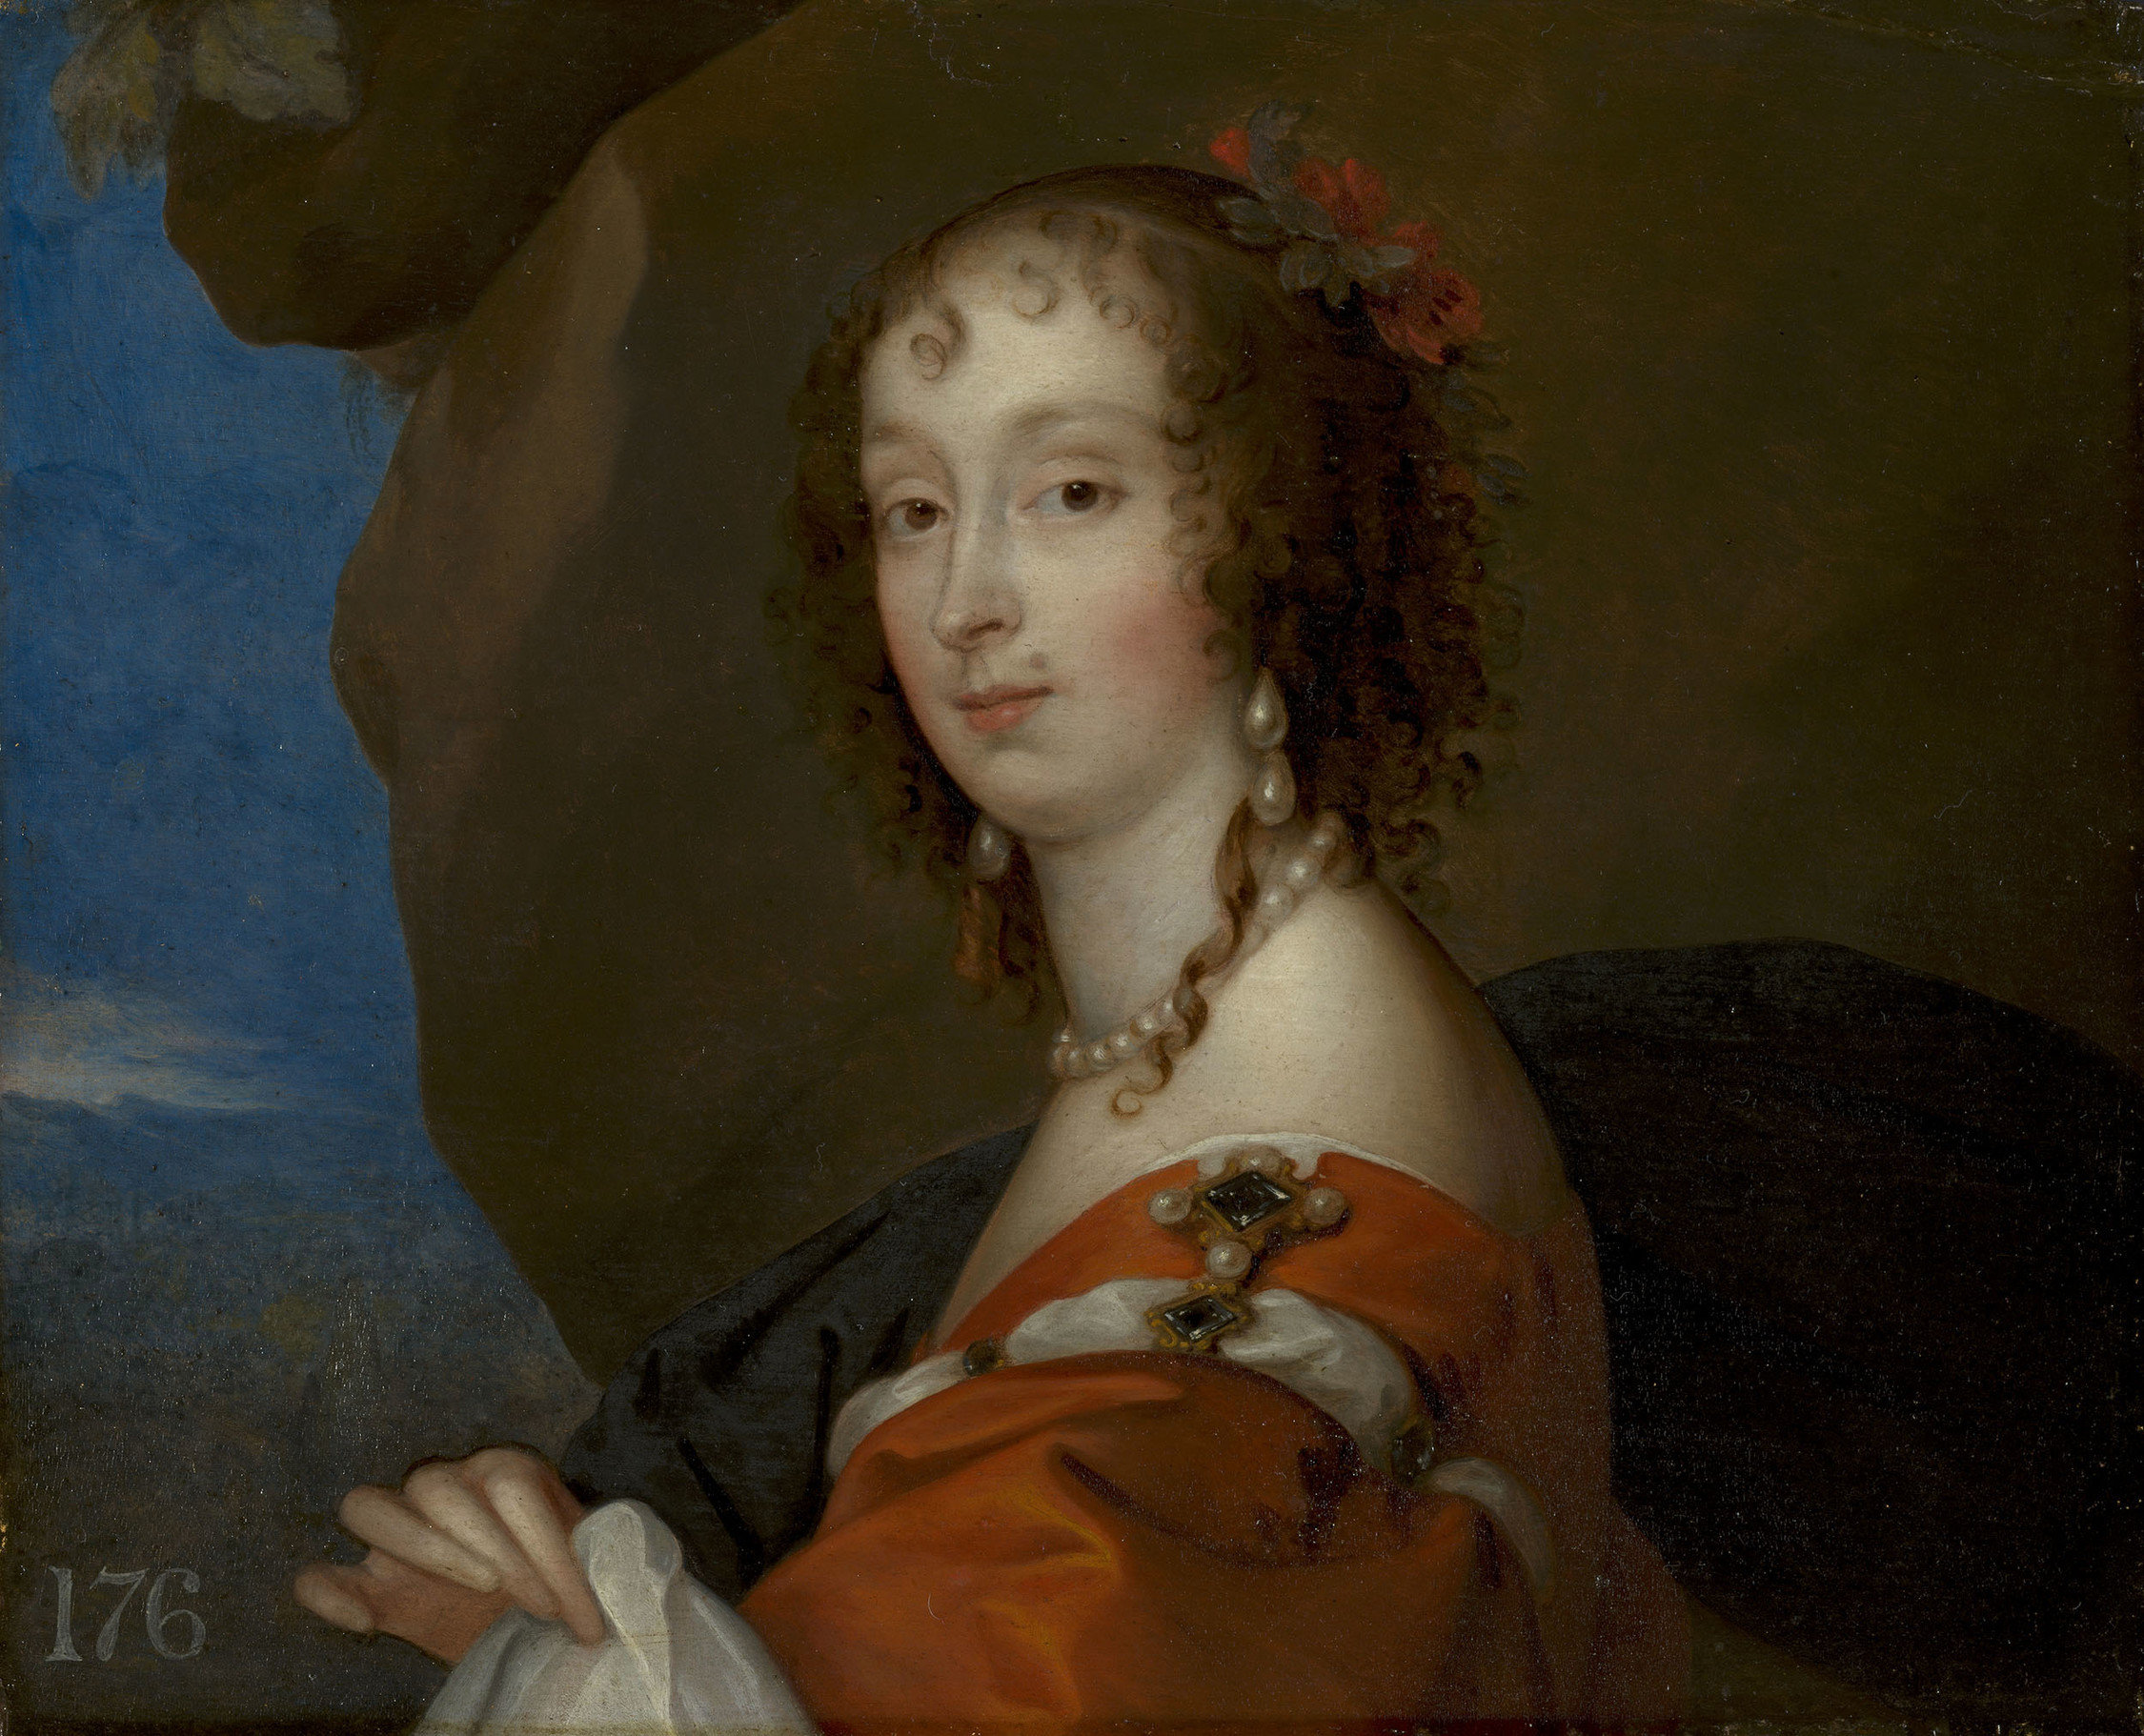 Diana Russell, Countess of Bradford (1624 – 1695)